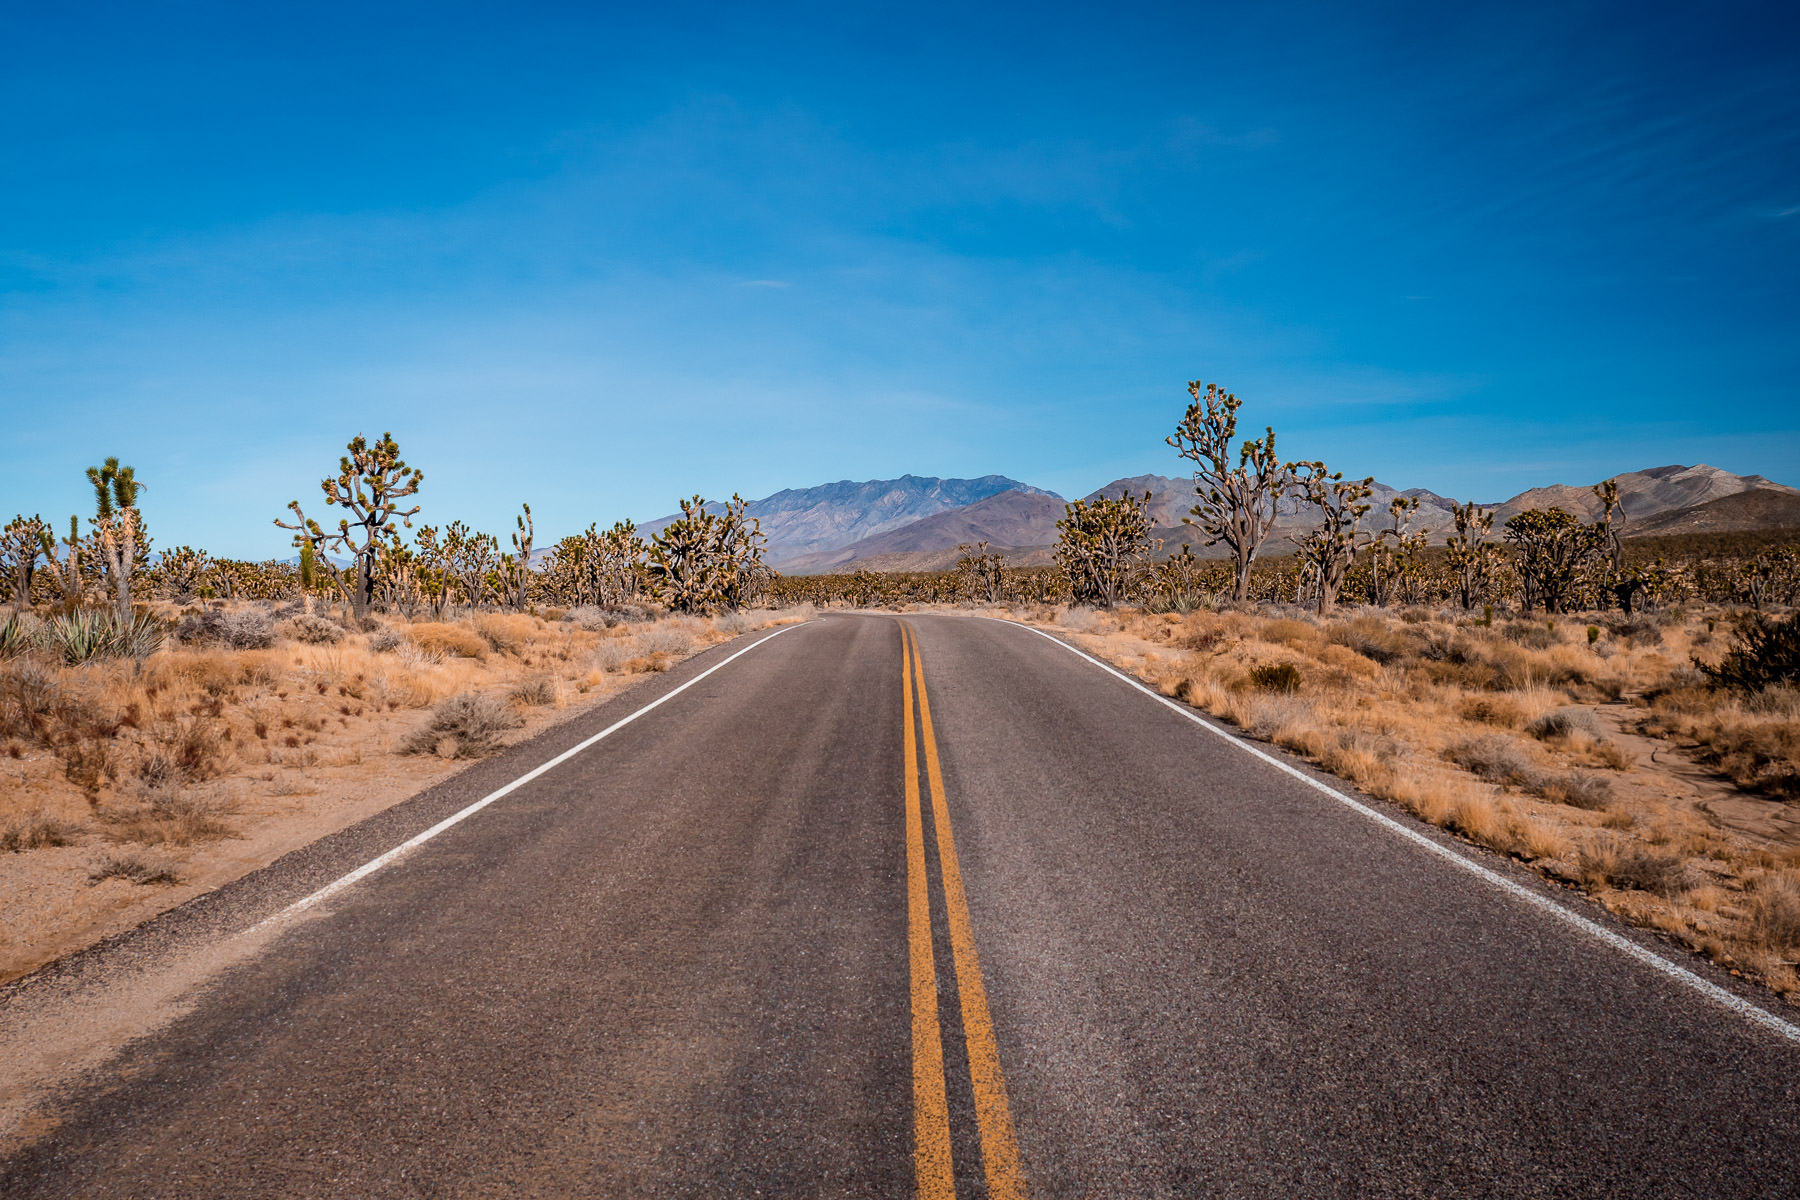 A lonely highway leads through the Joshua Trees of California's Mojave National Preserve.